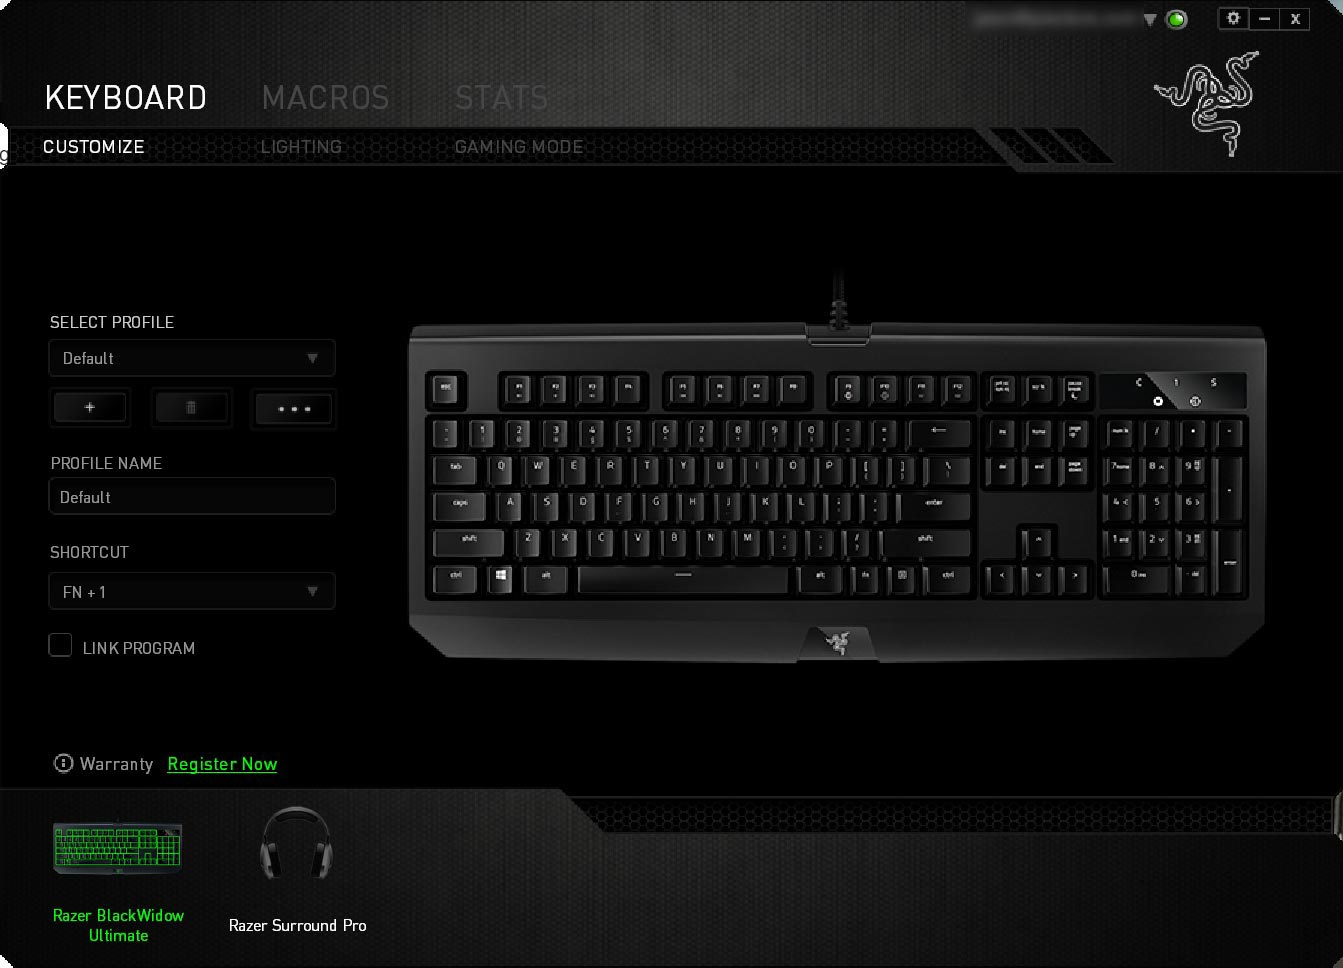 Razer-Synapse-2-Keyboard-Customize-tab